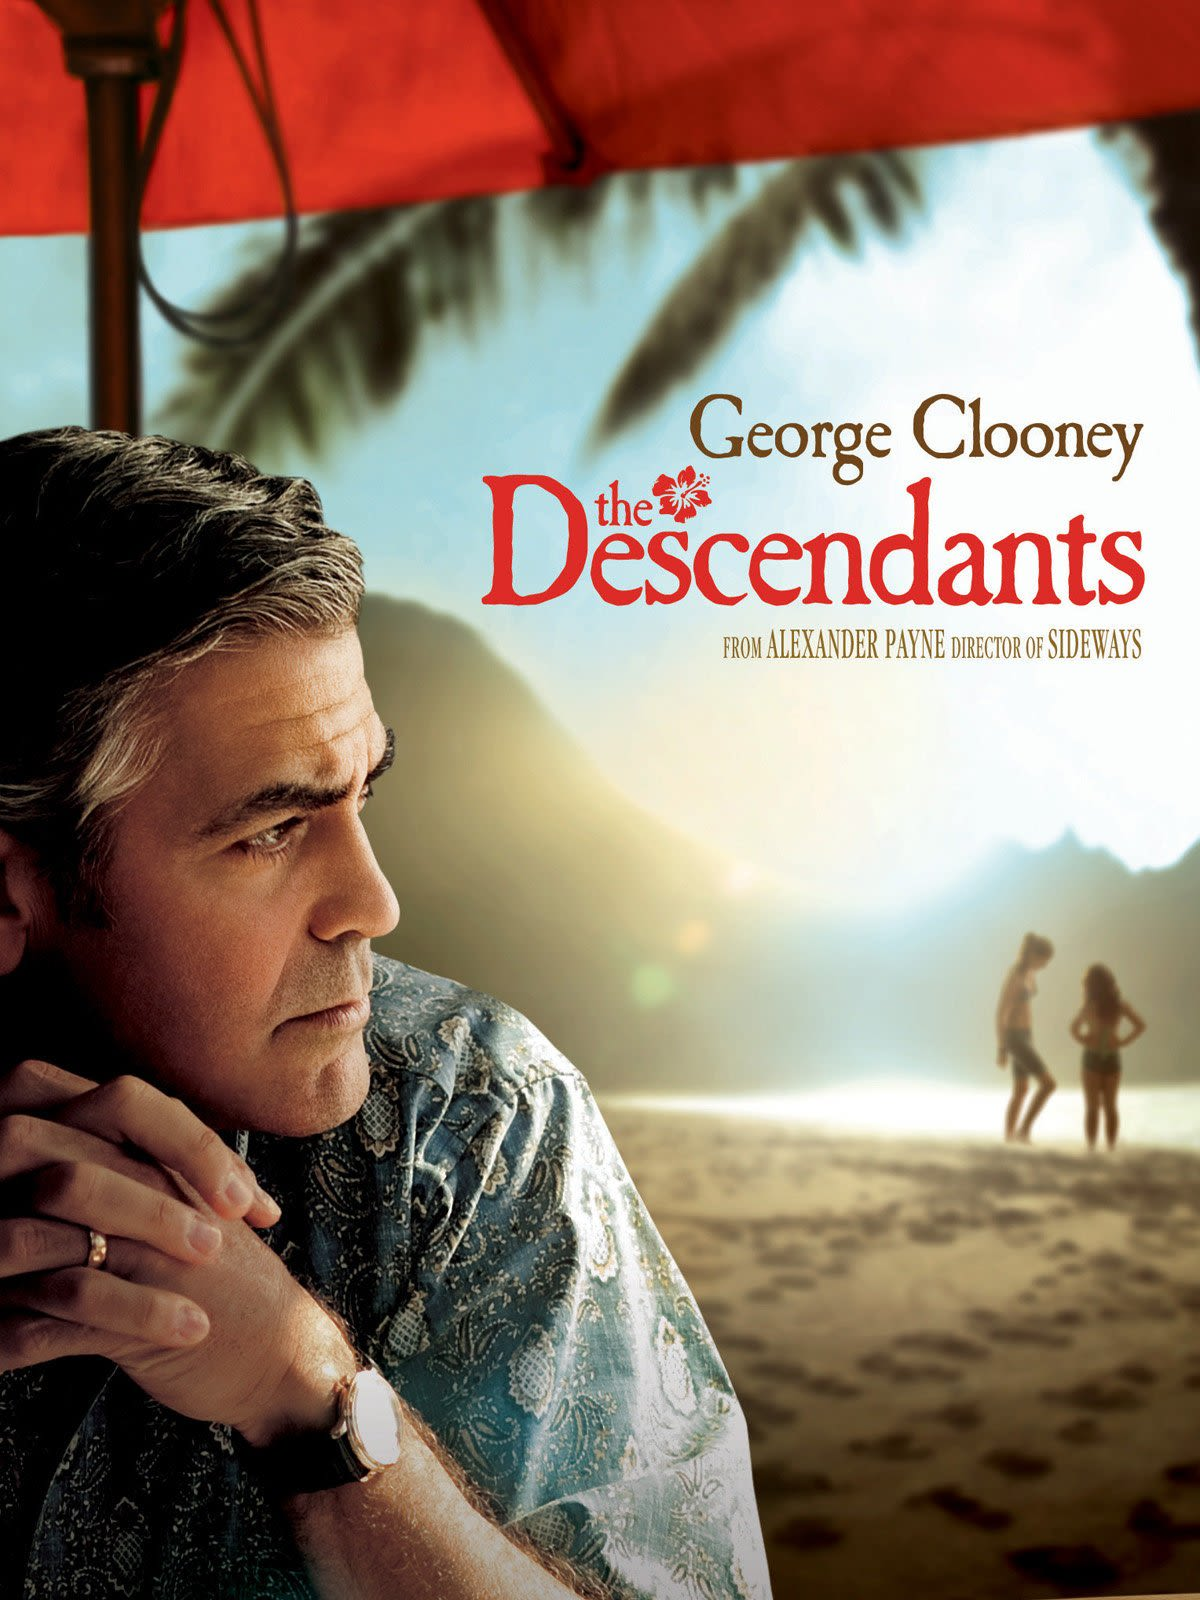 TheDescendants yucwzh